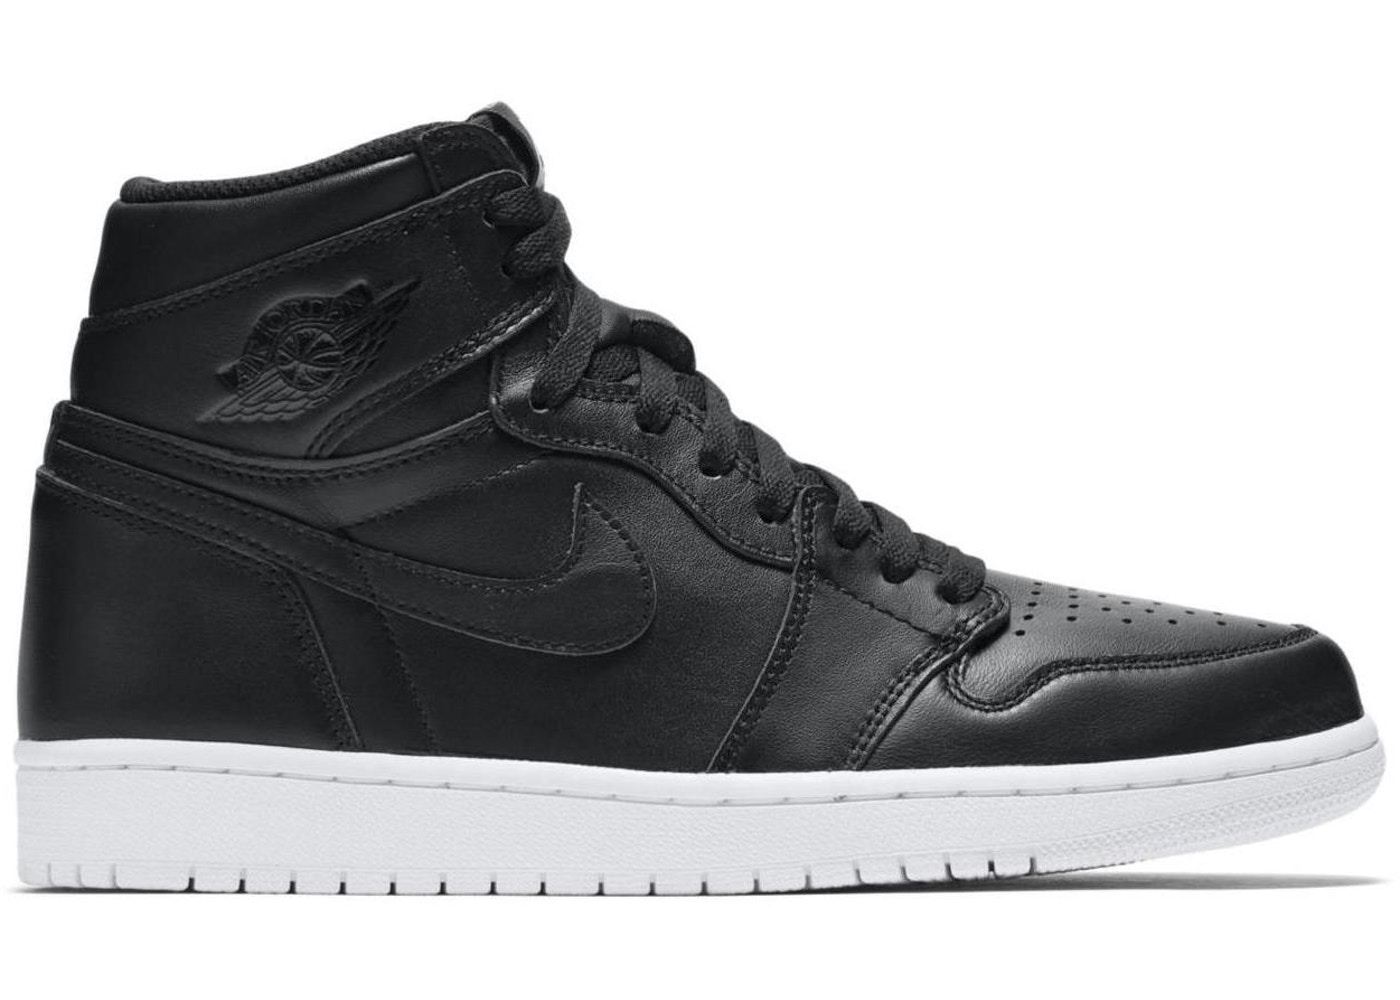 quality design 1c6d8 4ef6b Jordan 1 Retro Cyber Monday (2015)